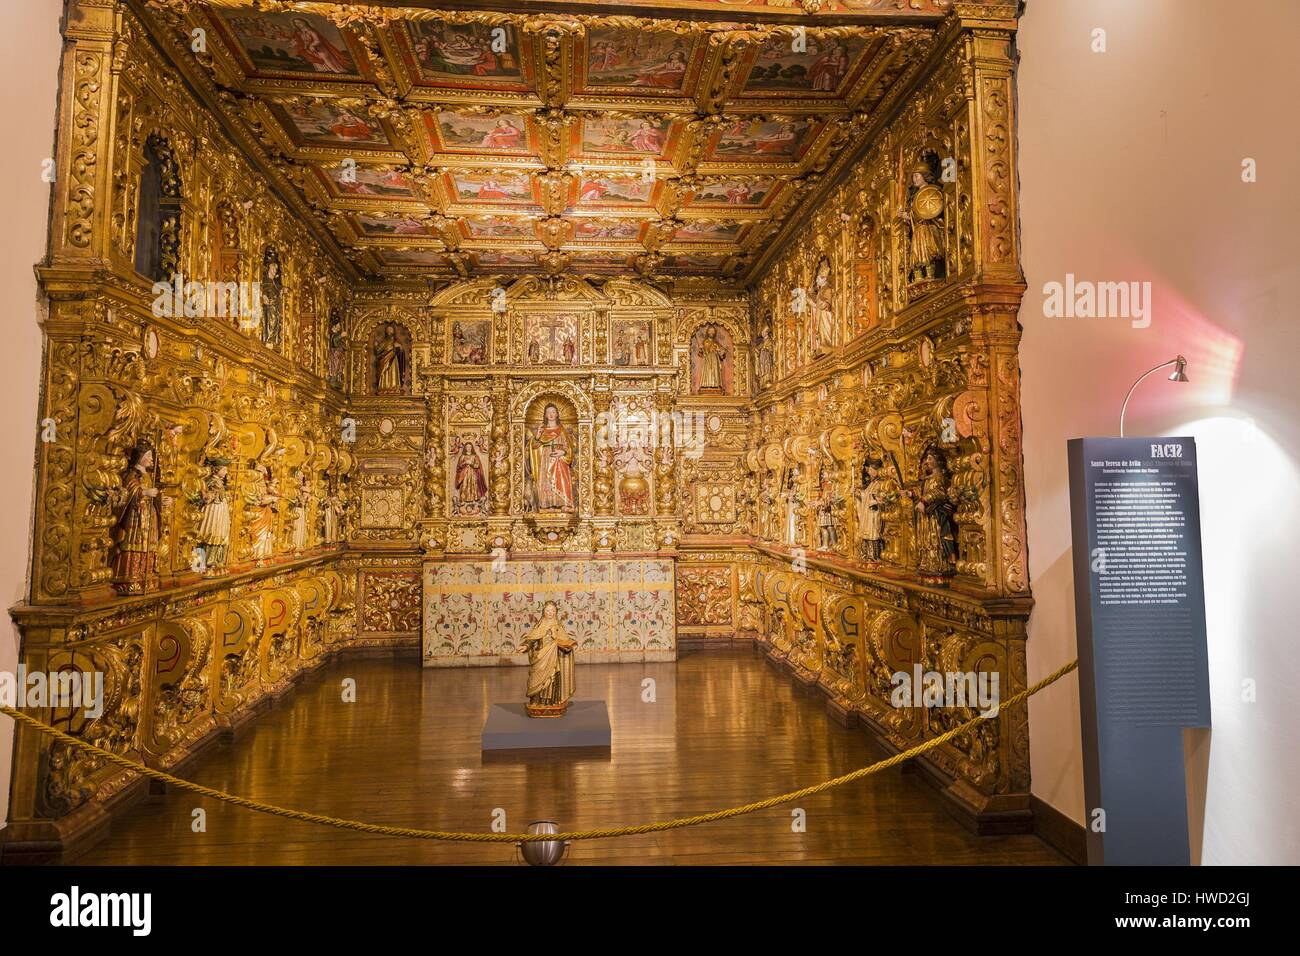 Portugal, Douro, Lamego, northern region, district of Viseu, Museum in the former episcopal palace, Santa Teresa - Stock Image